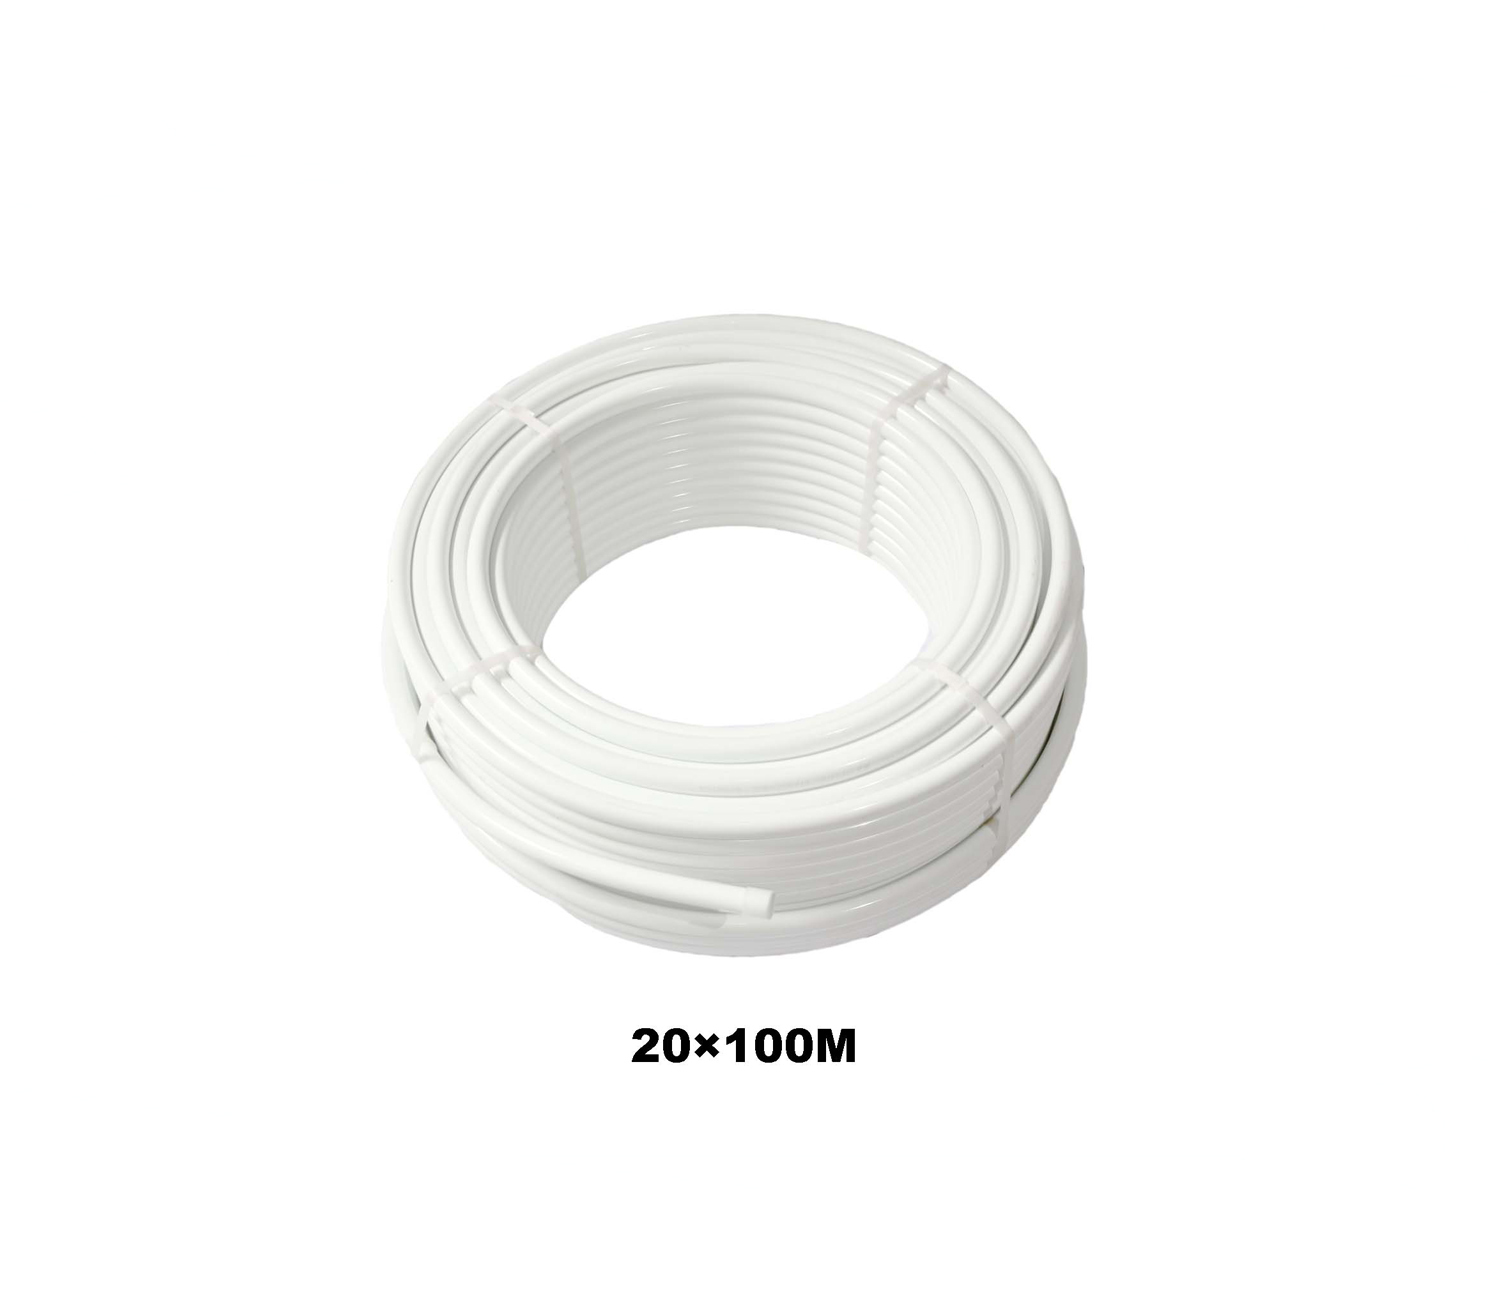 PEX-AL-PEX Multilayer Pipe 20×100M (White)